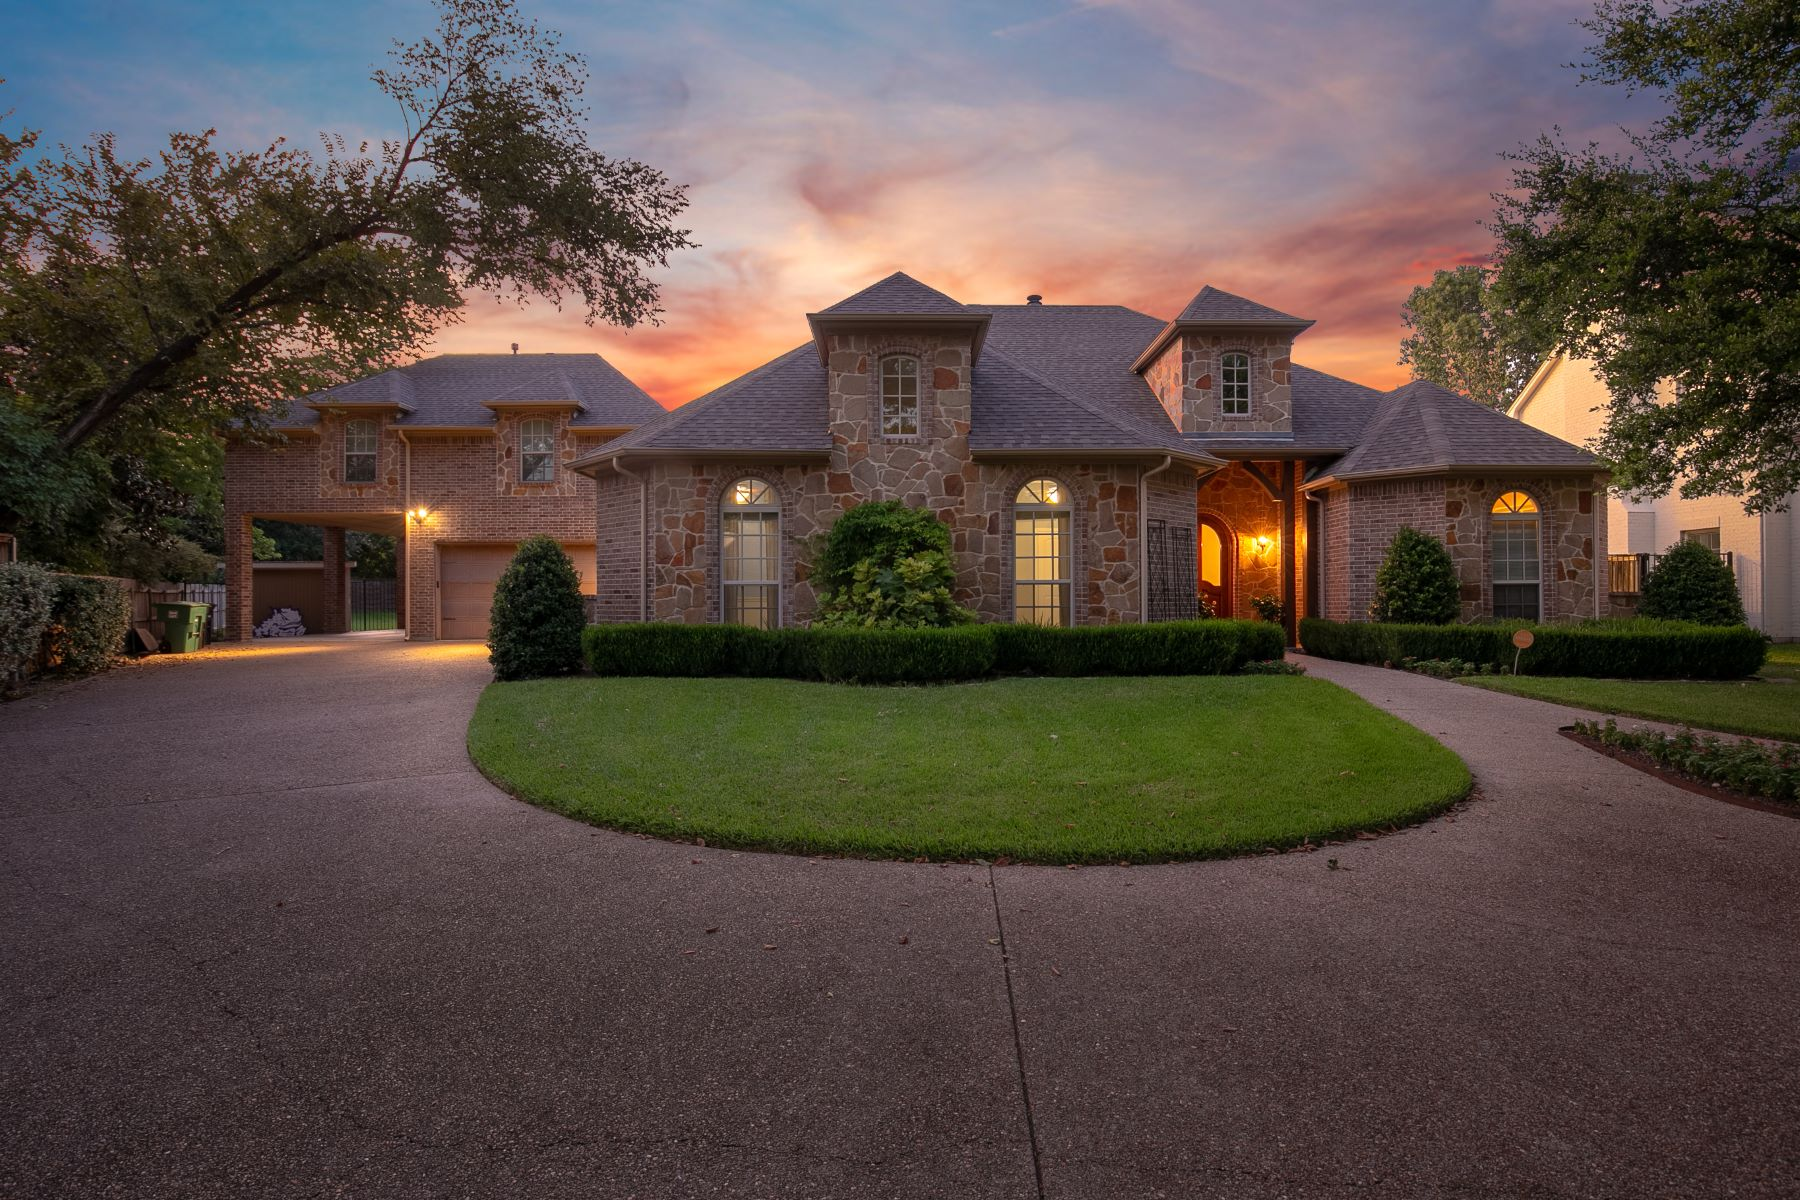 Single Family Homes for Active at Beautiful custom built, 5 bedroom, 4.1 bath 2840 River Brook Court Fort Worth, Texas 76116 United States